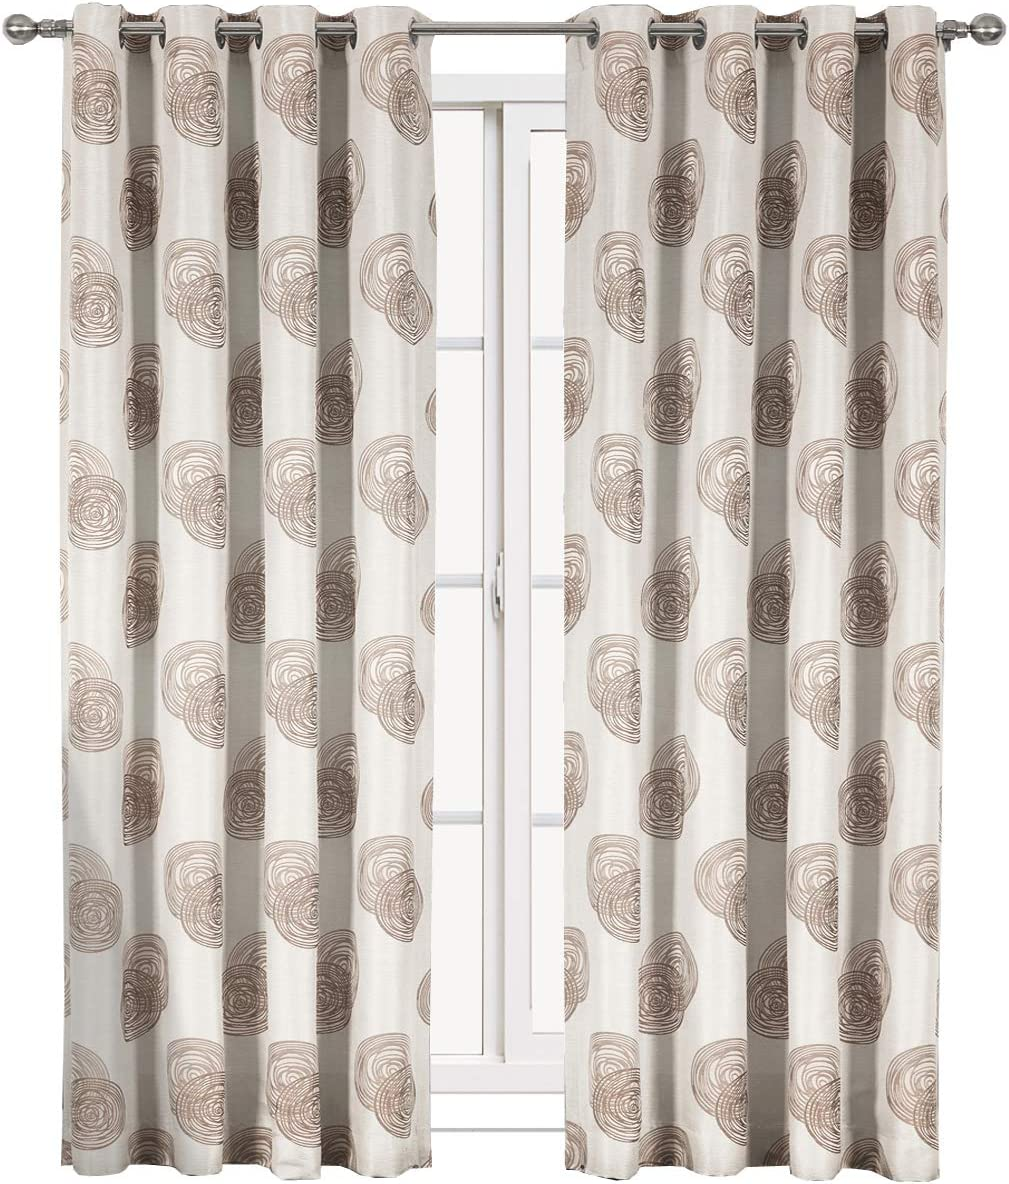 Royal Tradition Lafayette 108-Inch Wide x 120-Inch Long, Set of 2, Jacquard Grommet Window Curtains, Brown